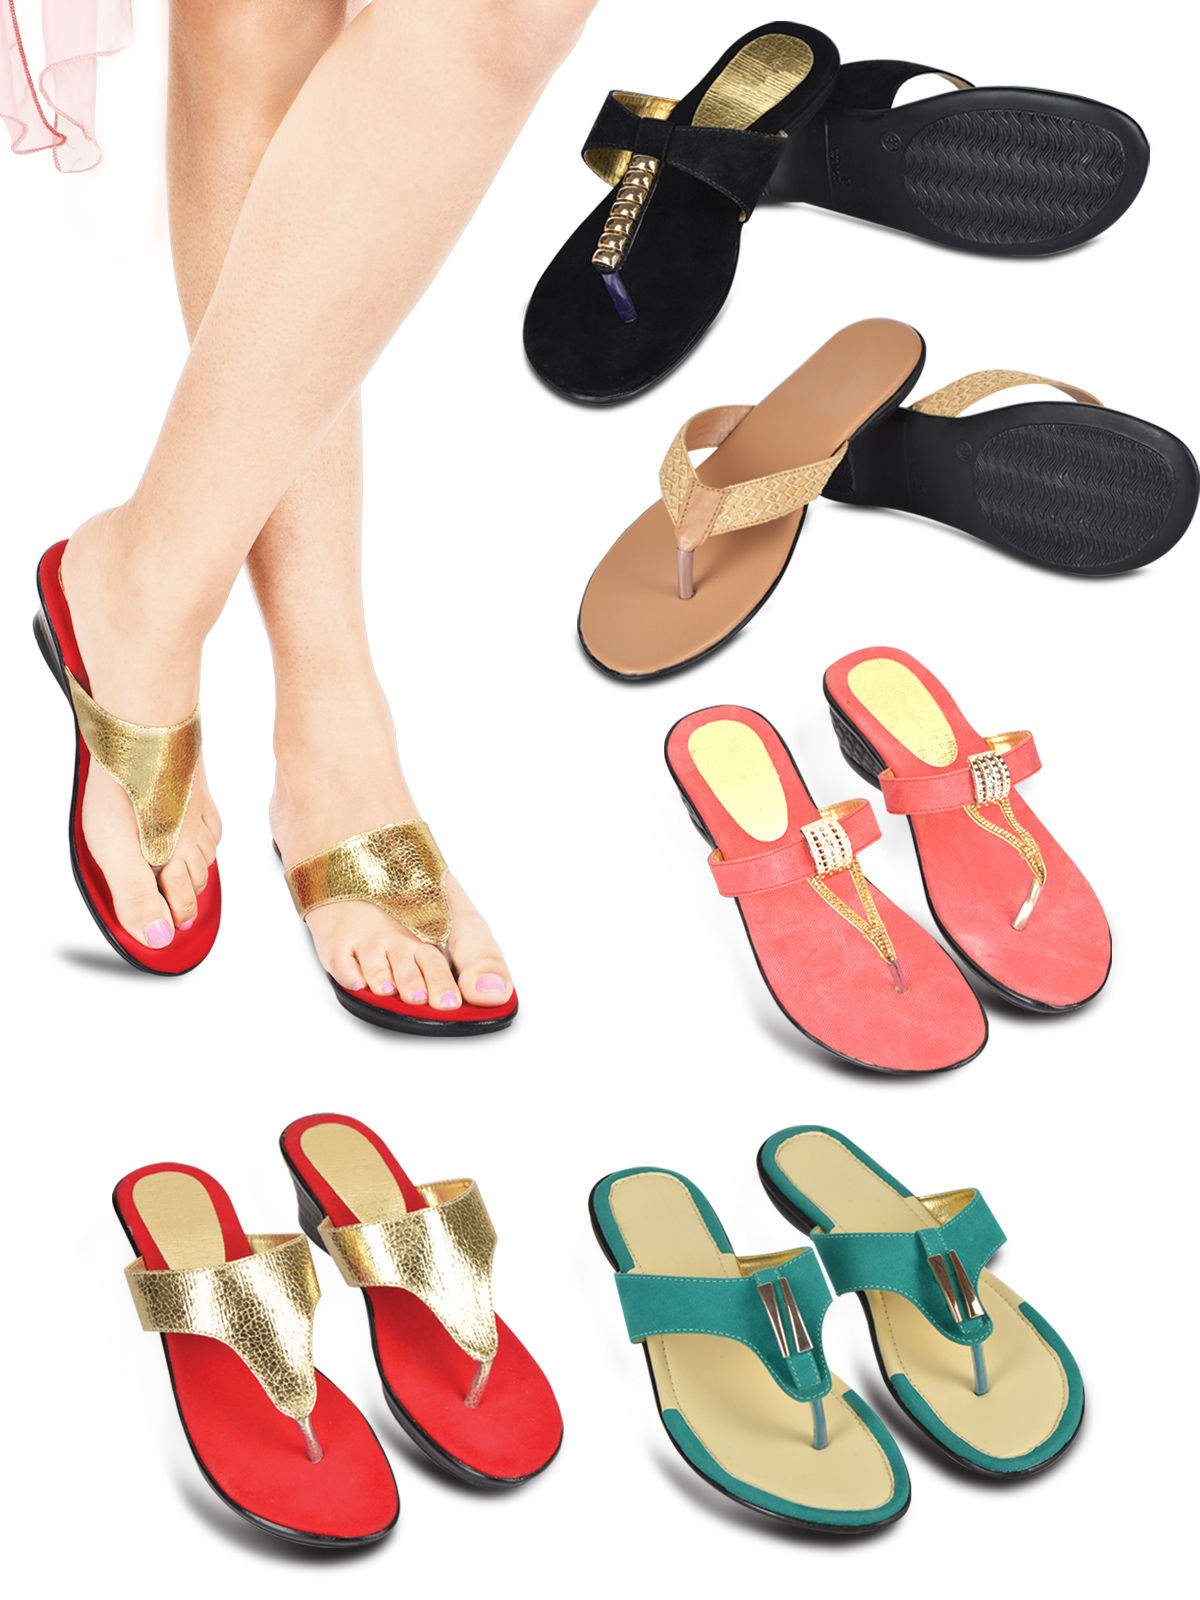 6c066180124939 Buy 5 Pairs of Ladies Comfort Footwear Online at Best Price in India on  Naaptol.com